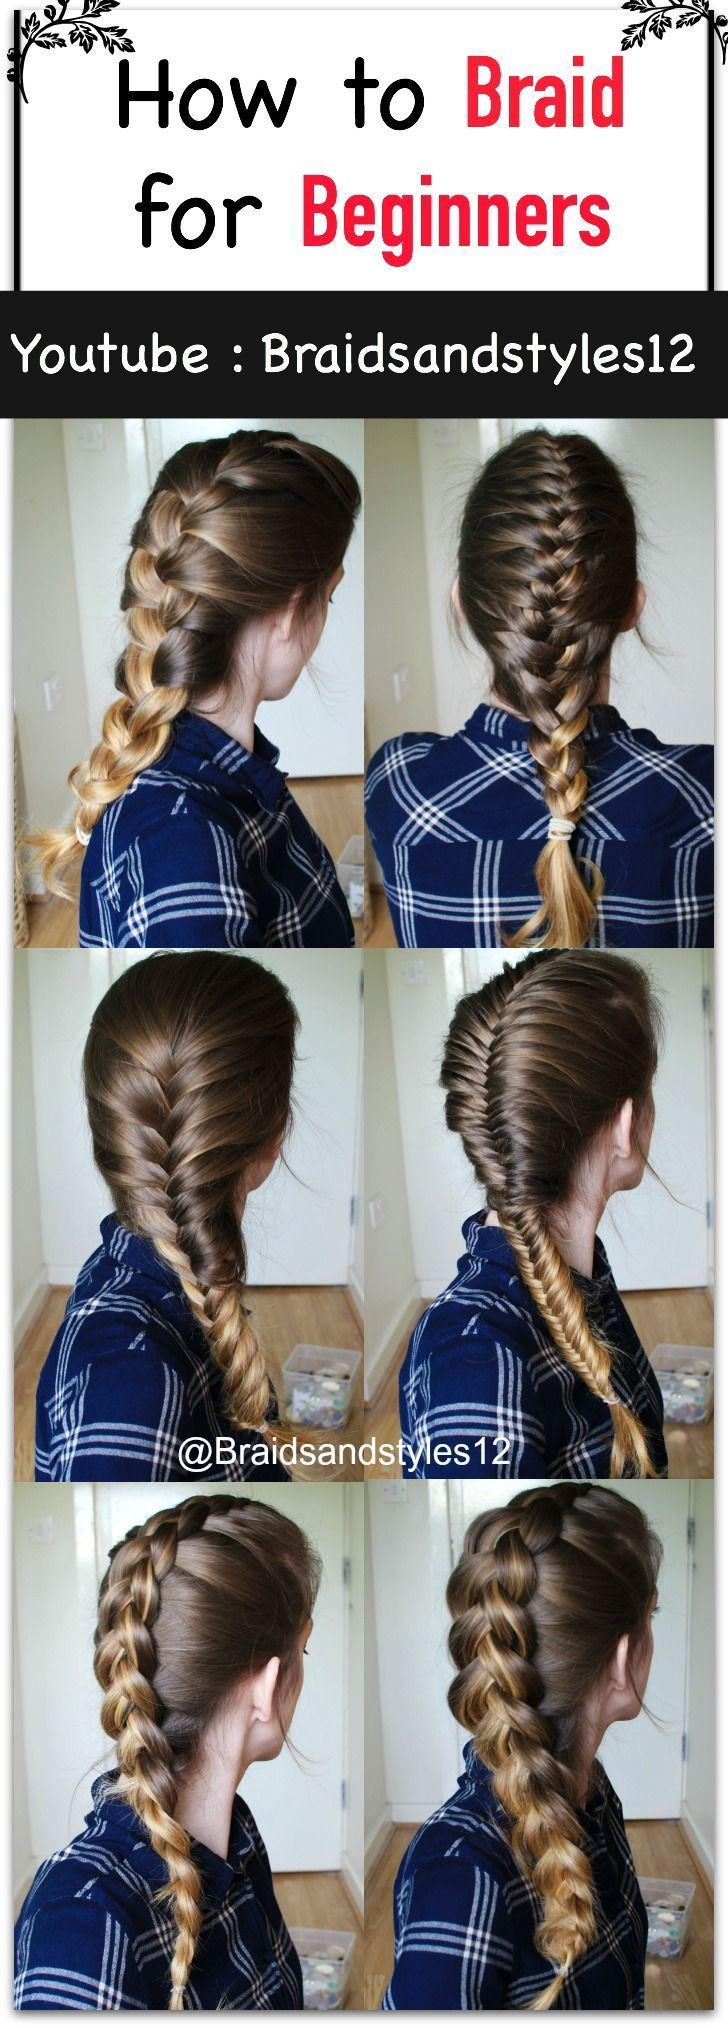 How to Braid your Own Hair for Beginners by Braidsandstyles12. Click the  below ...